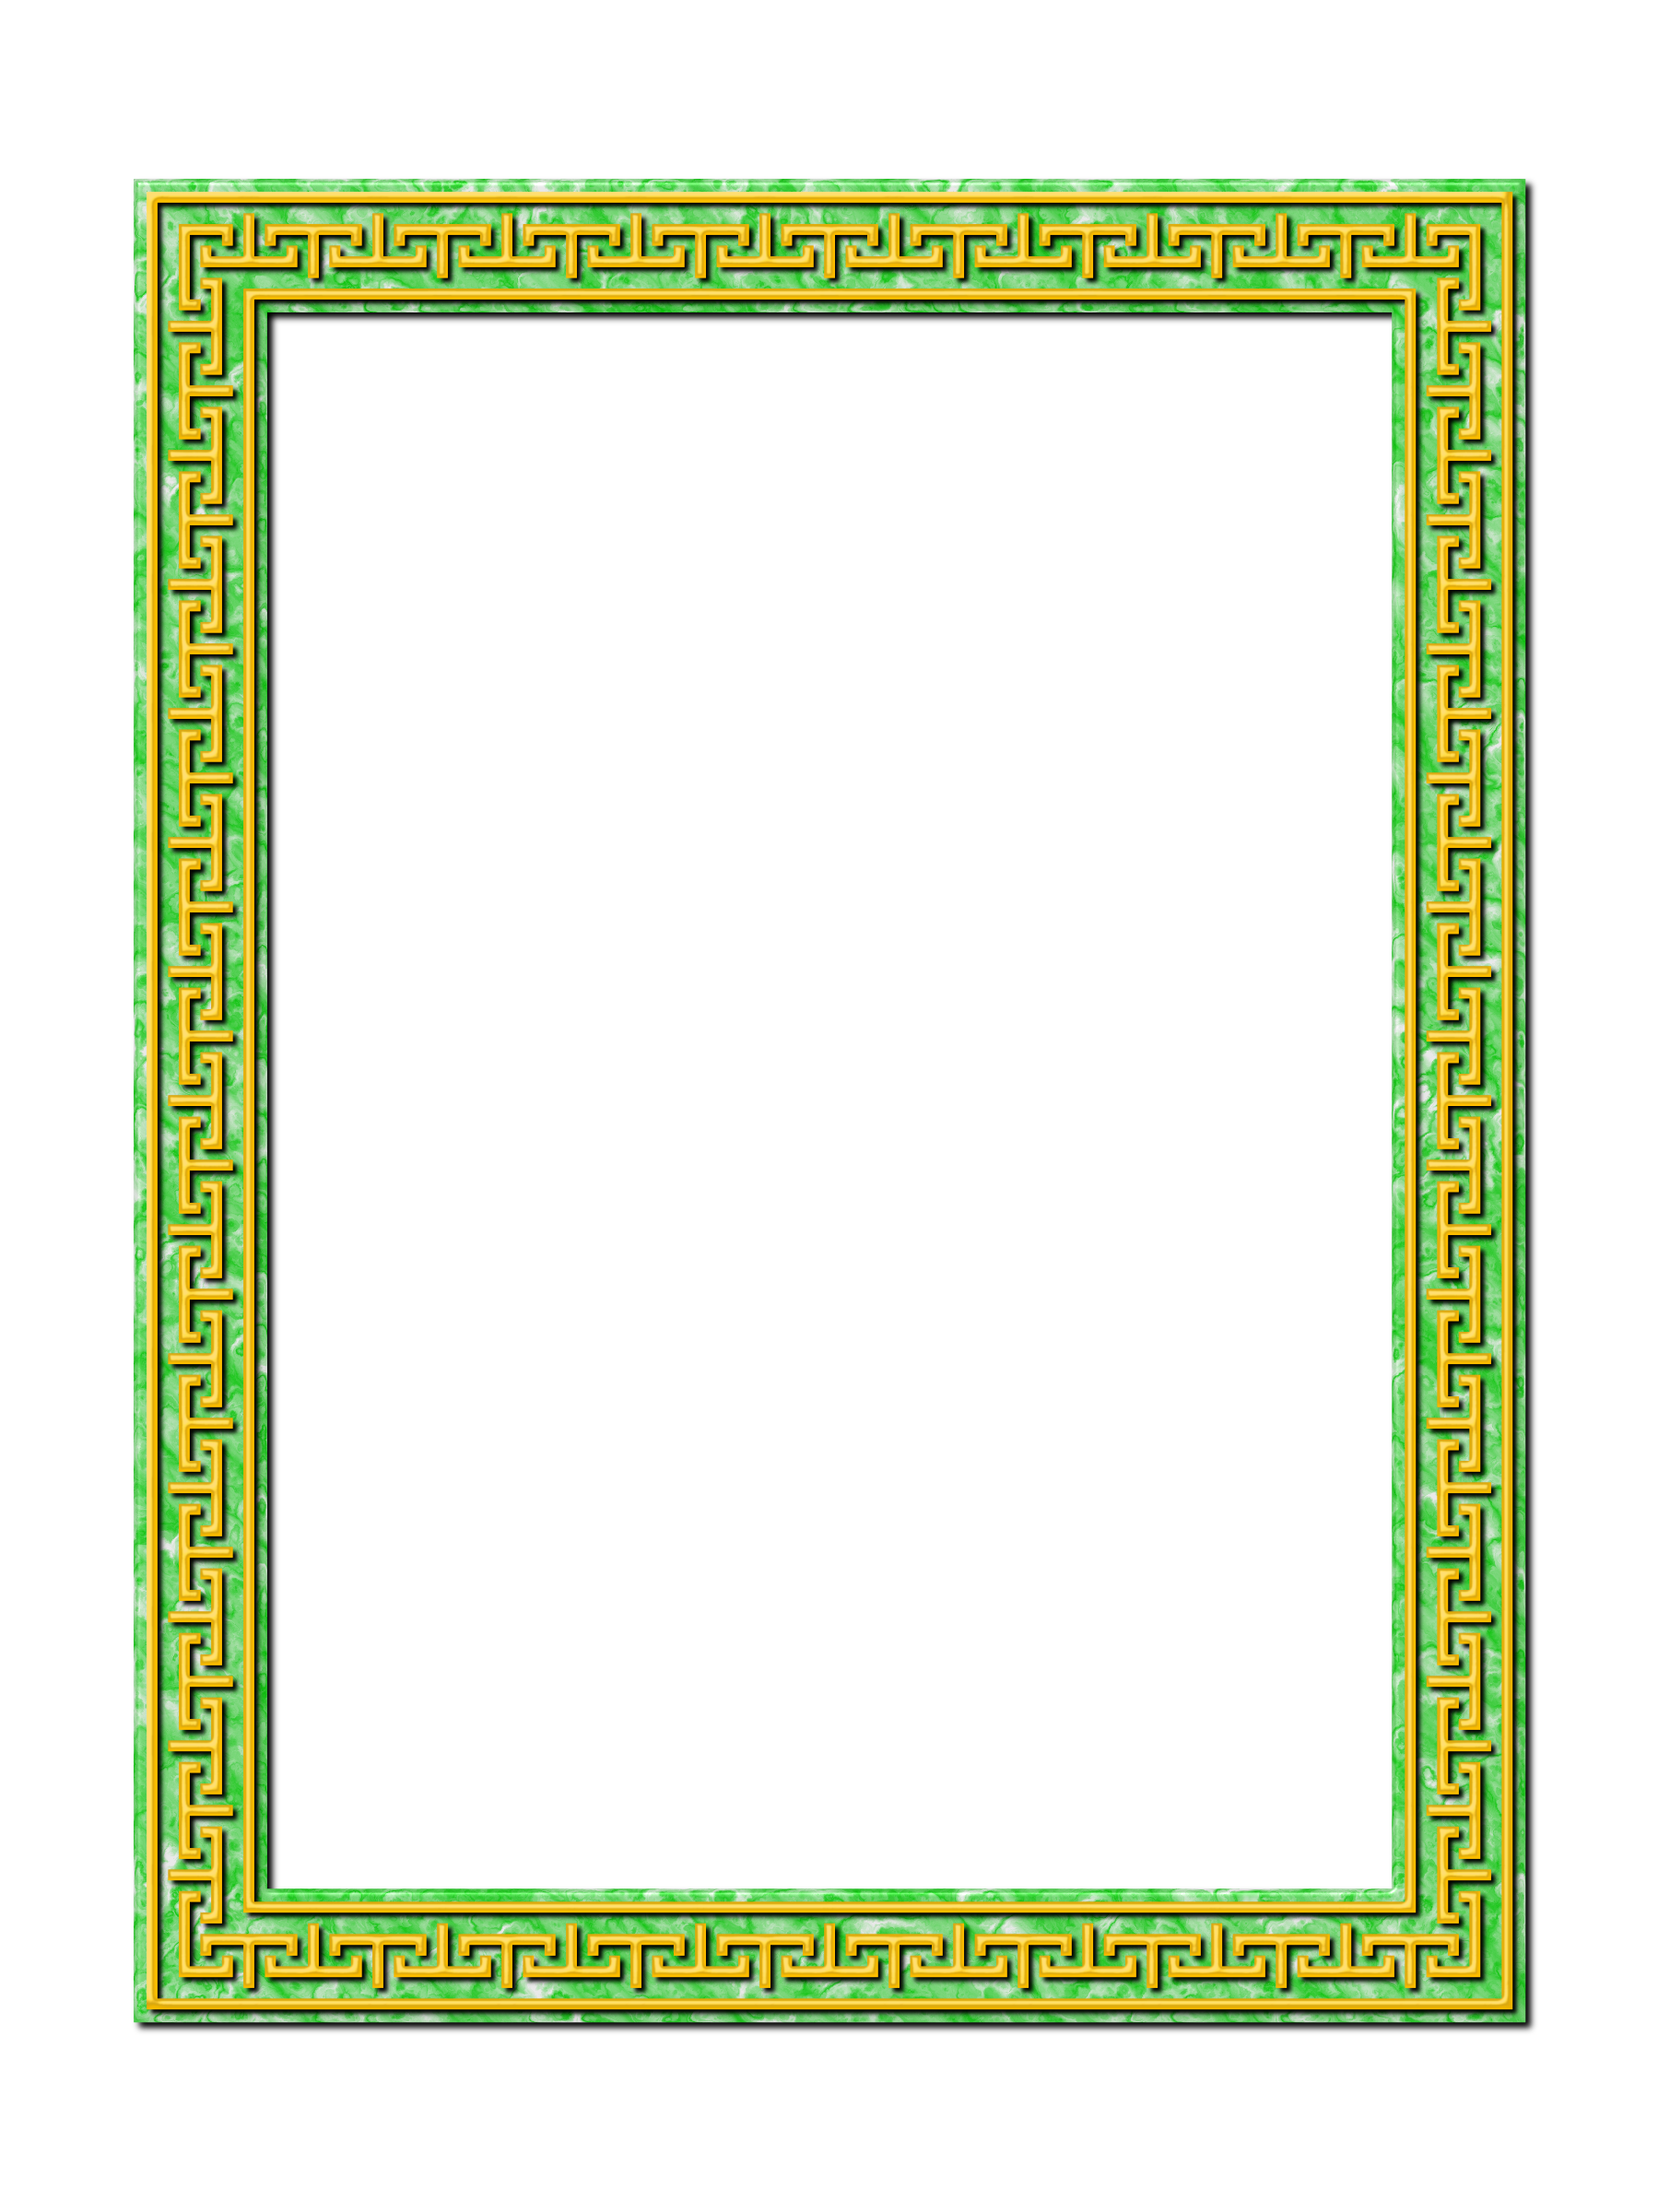 Greek-style frame 3 by Firkin